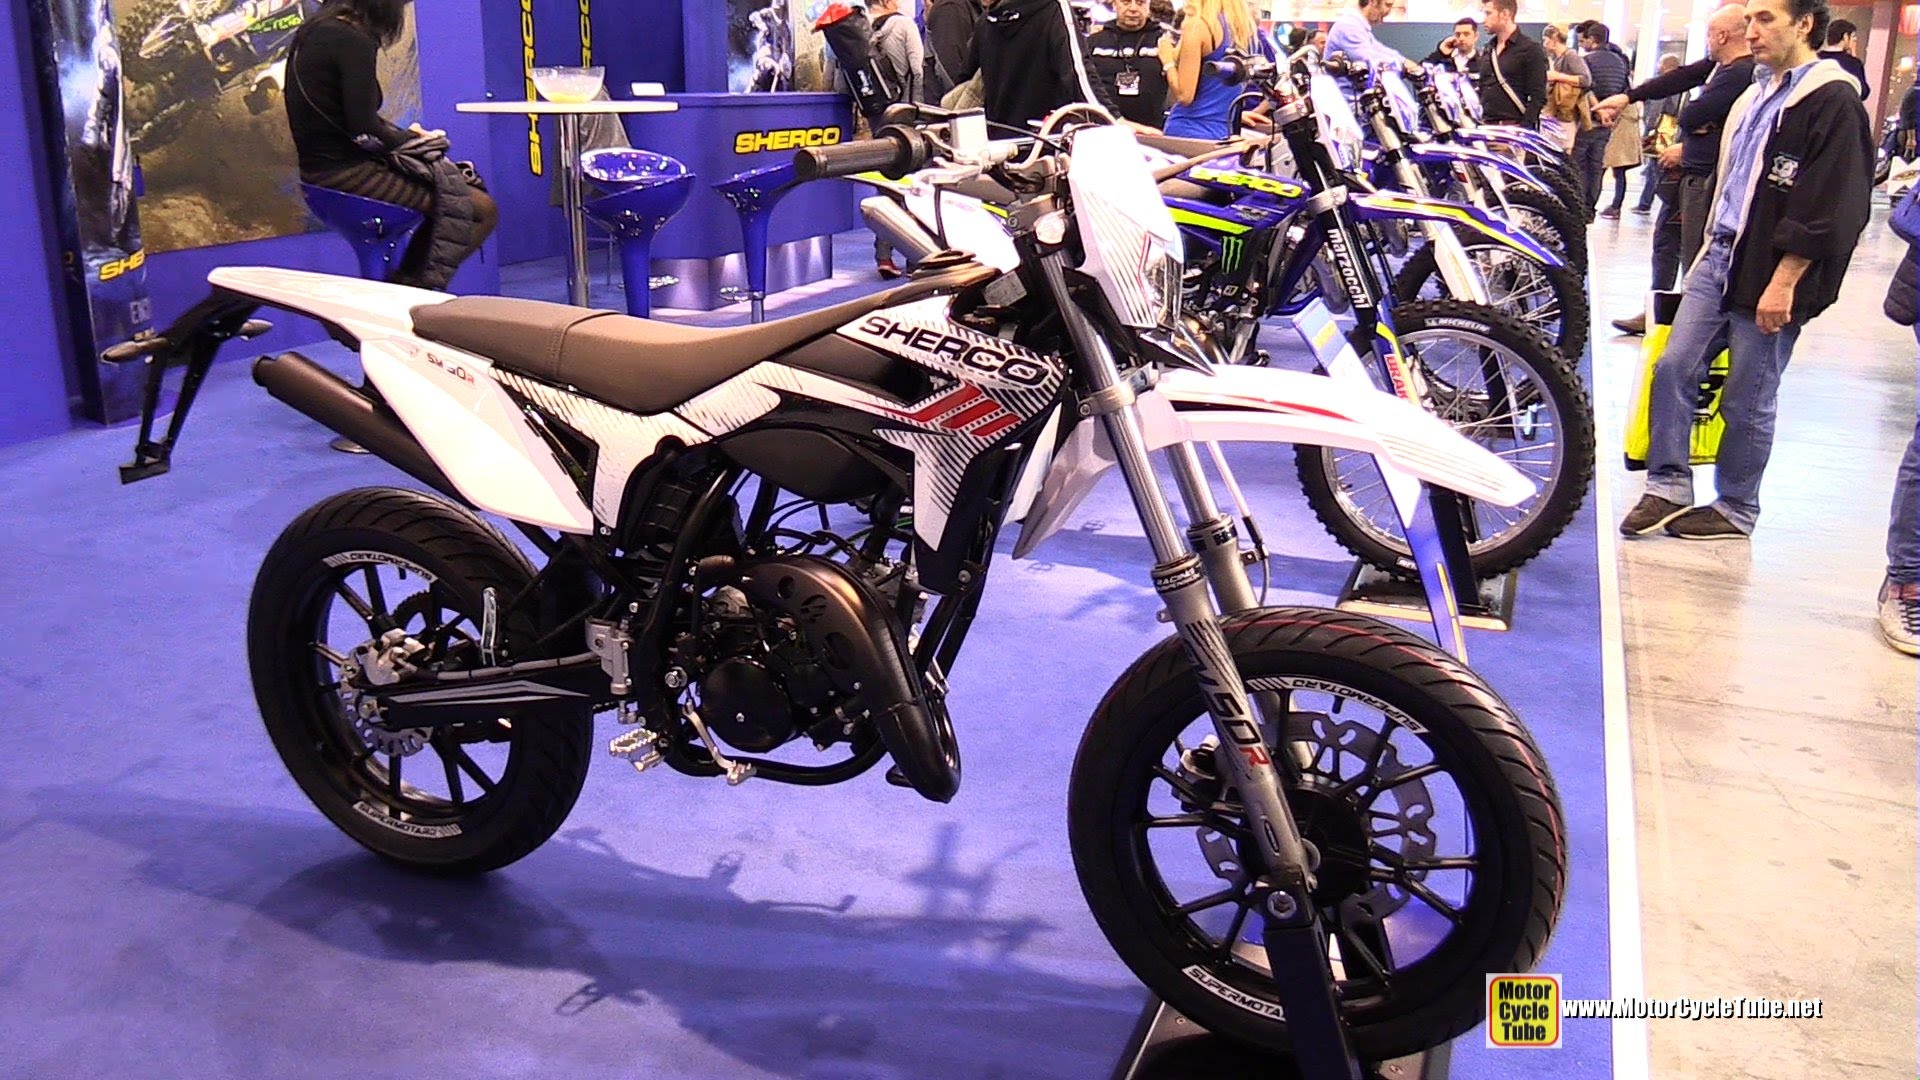 Sherco Supermotard 50 cc #6